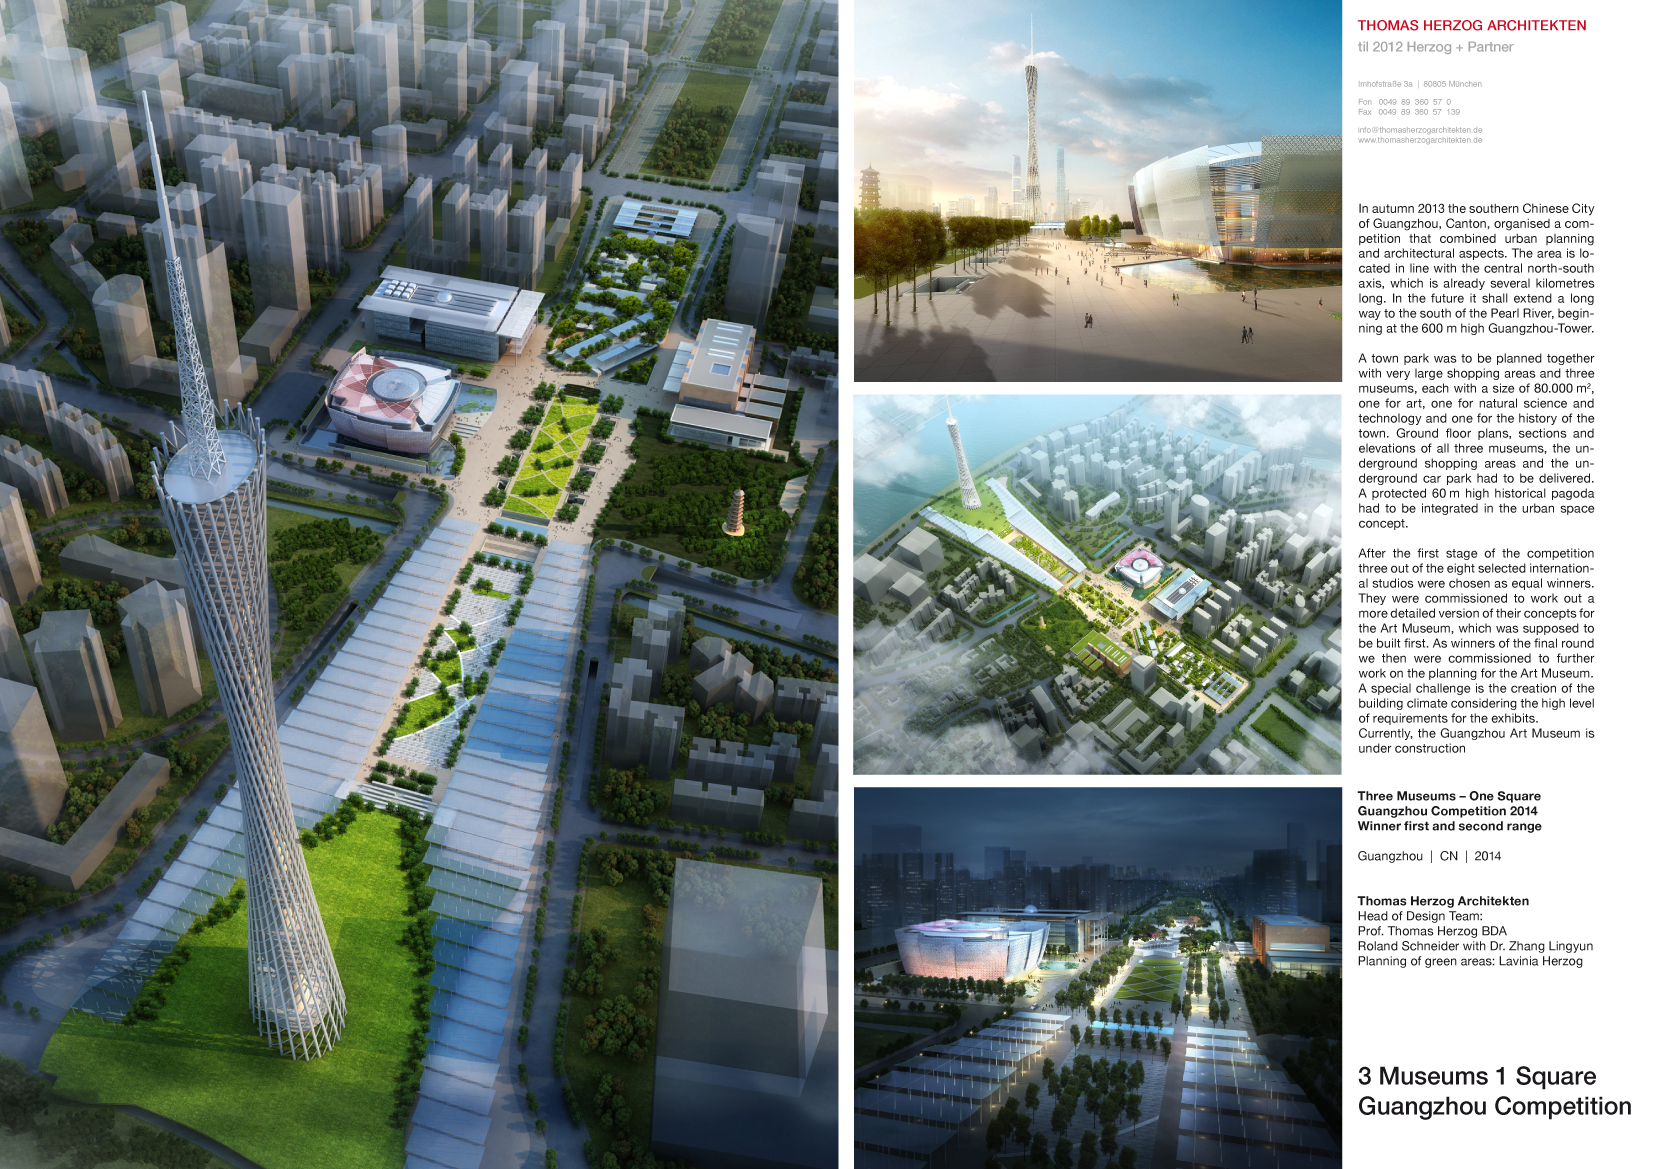 Competition 1. Prize Three Museums One Square Guangzhou 2014